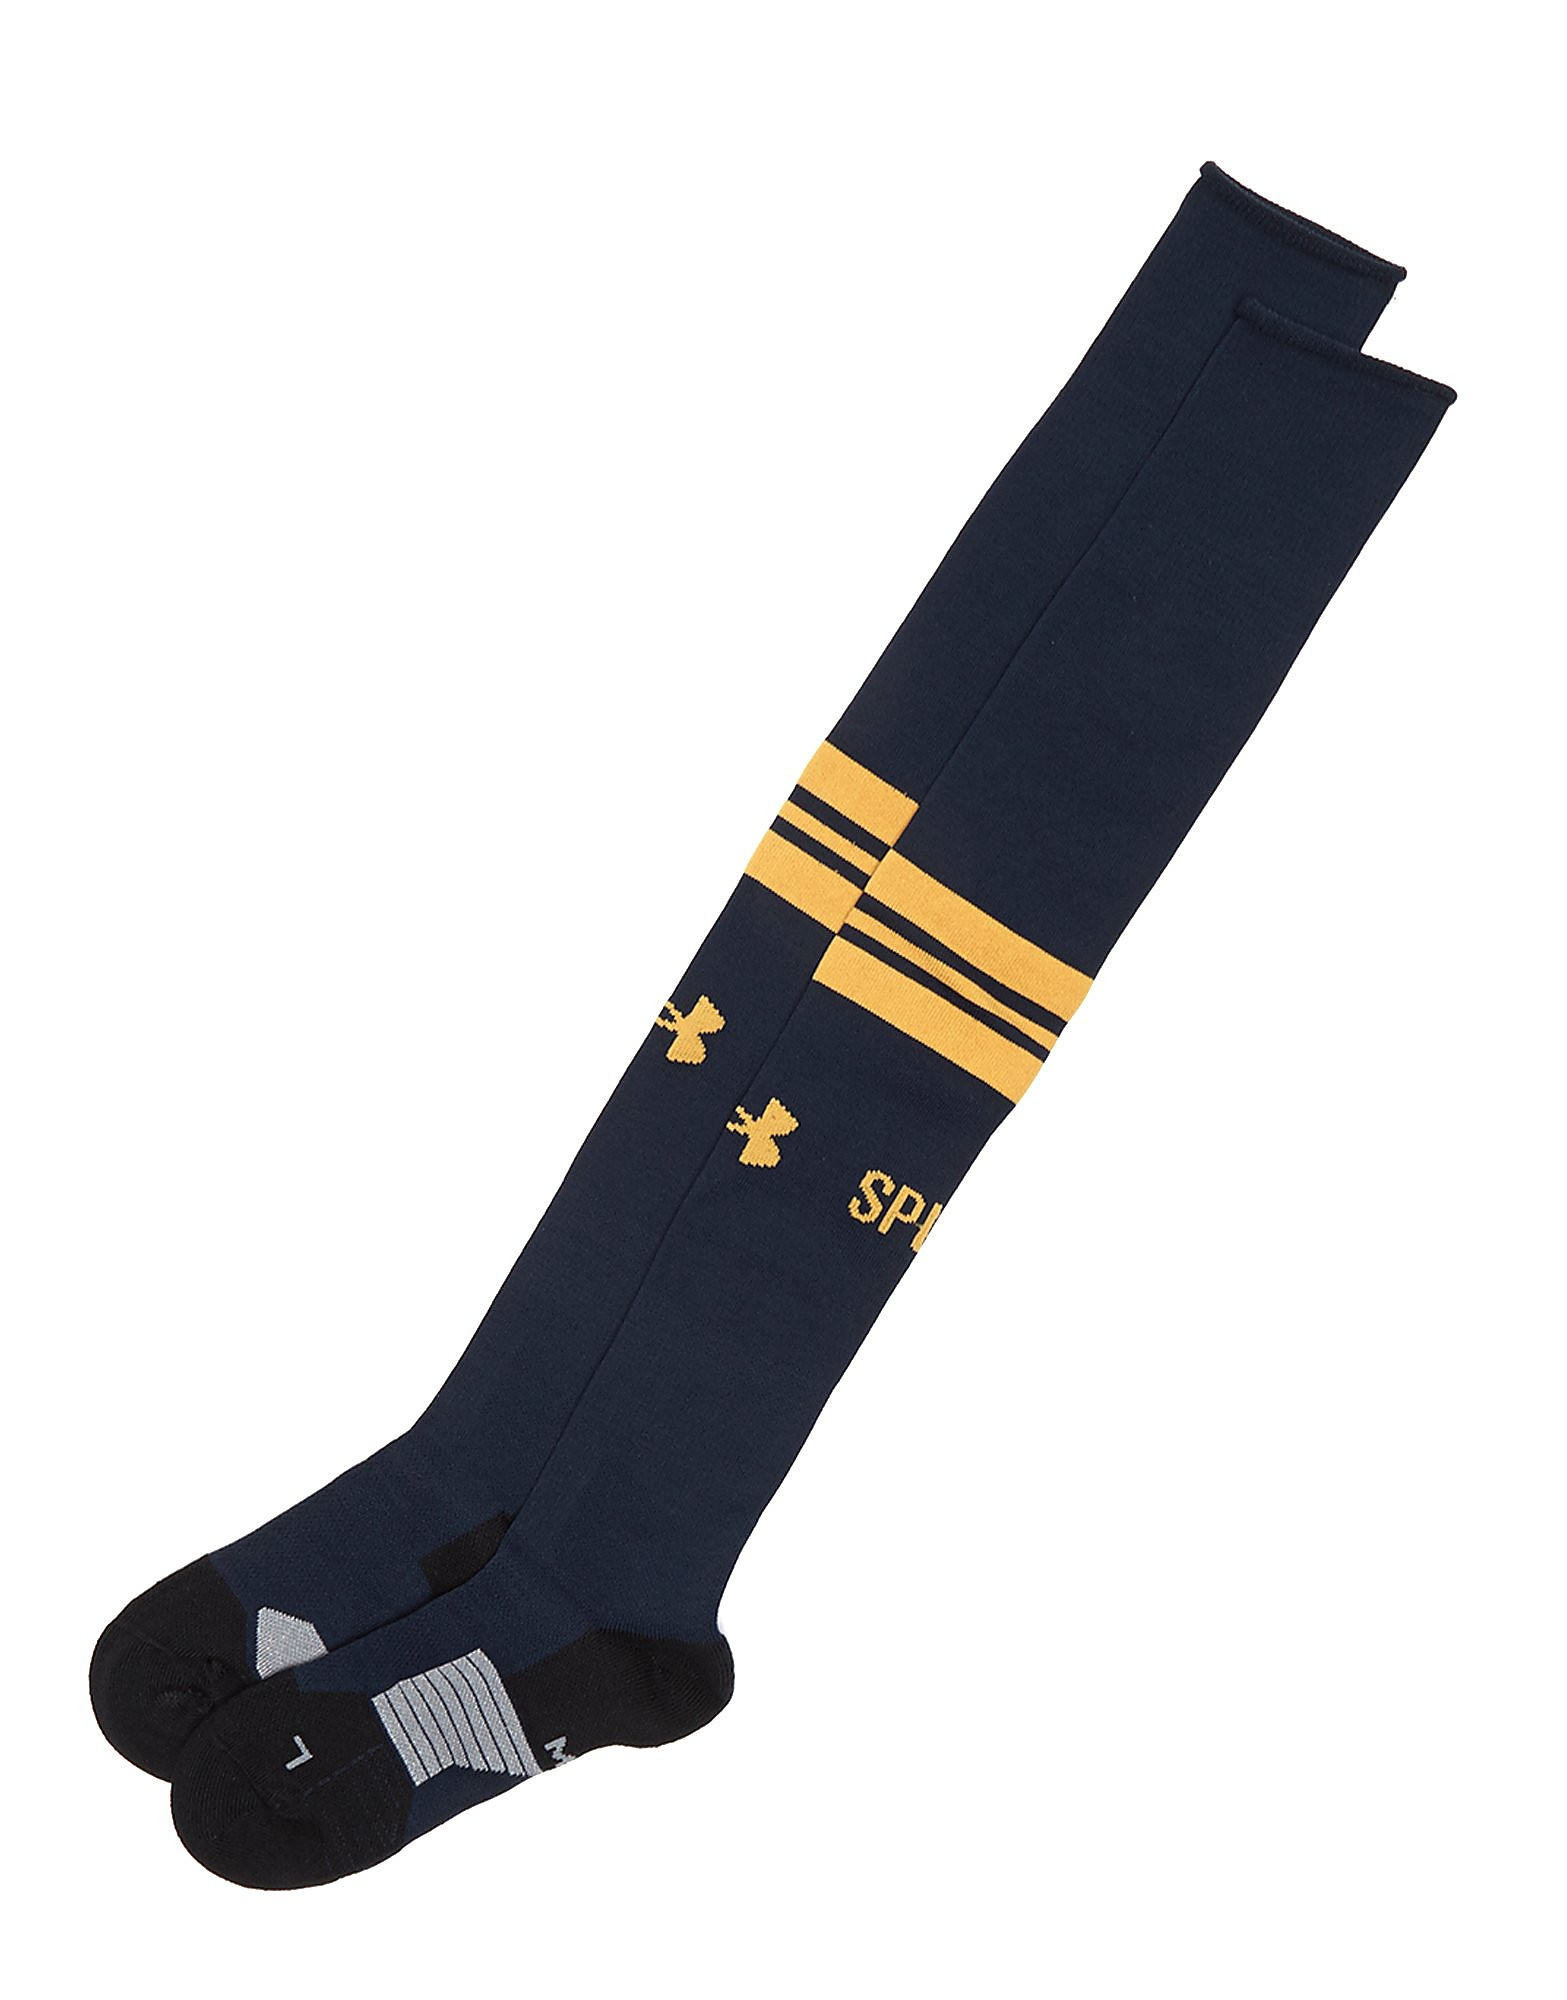 Under Armour Tottenham Hotspur FC Away 2016/17 Socks